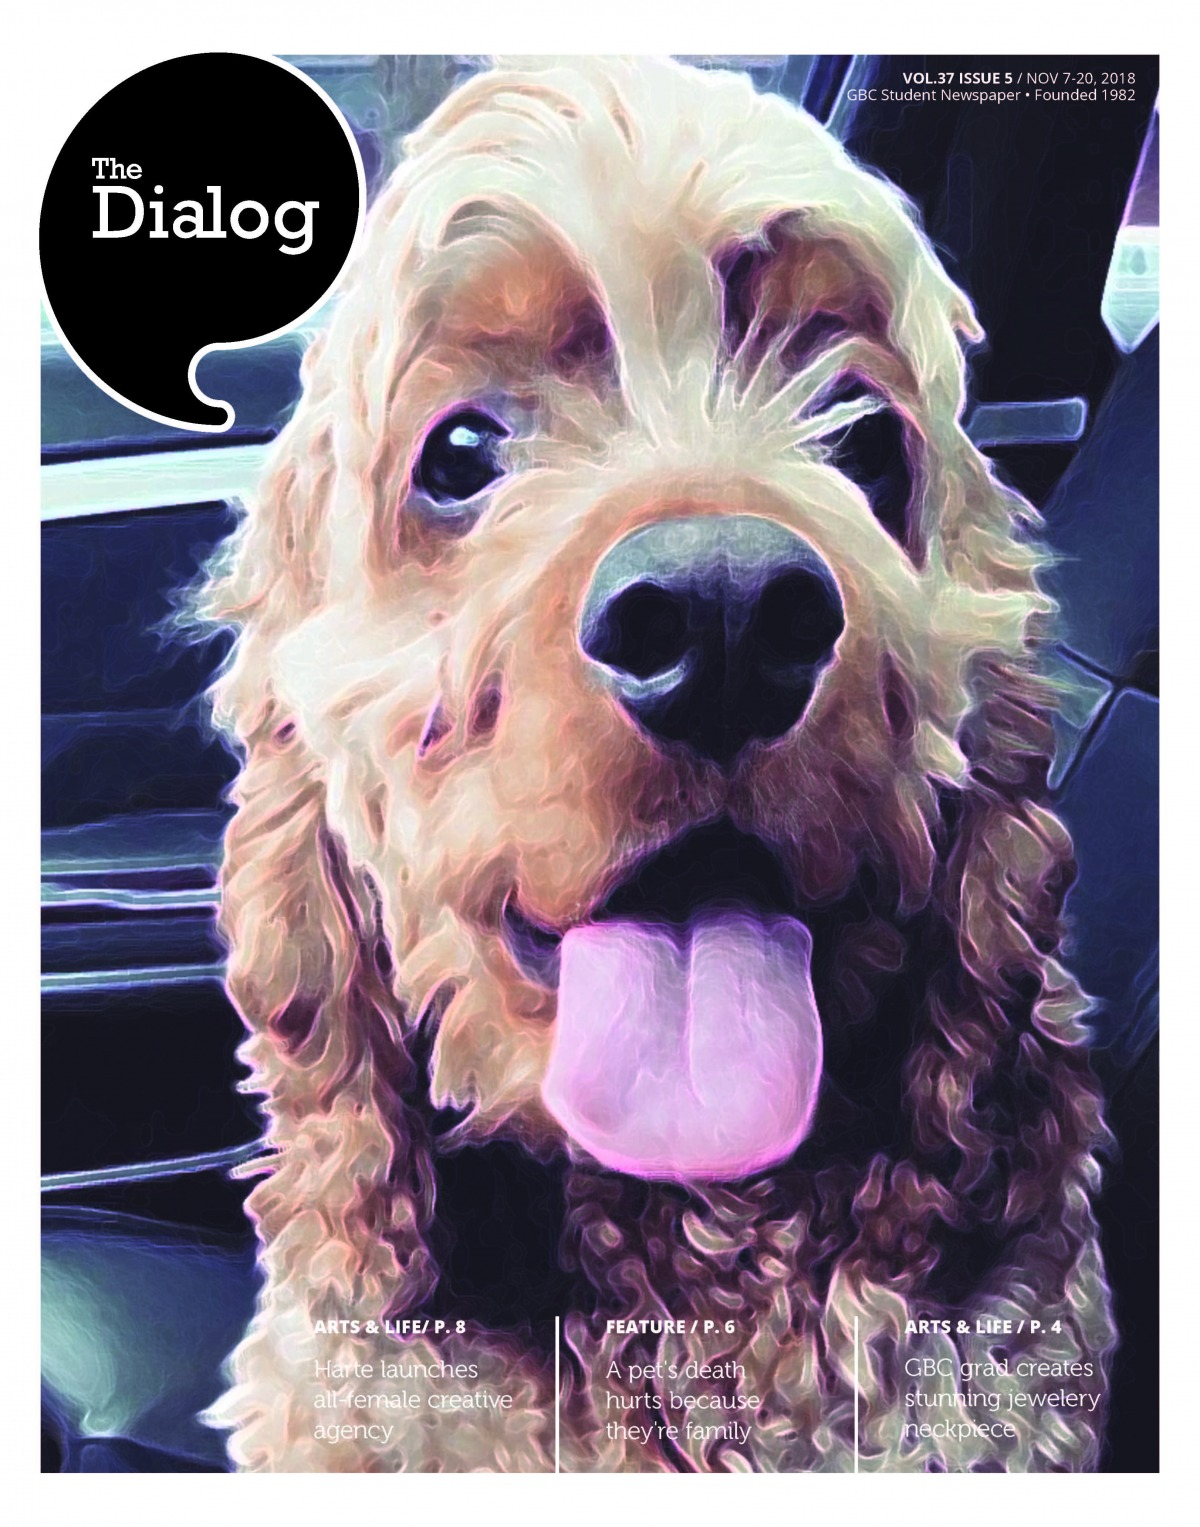 The Dialog Vol. 37, Issue 5, Nov. 7 to 20, 2018